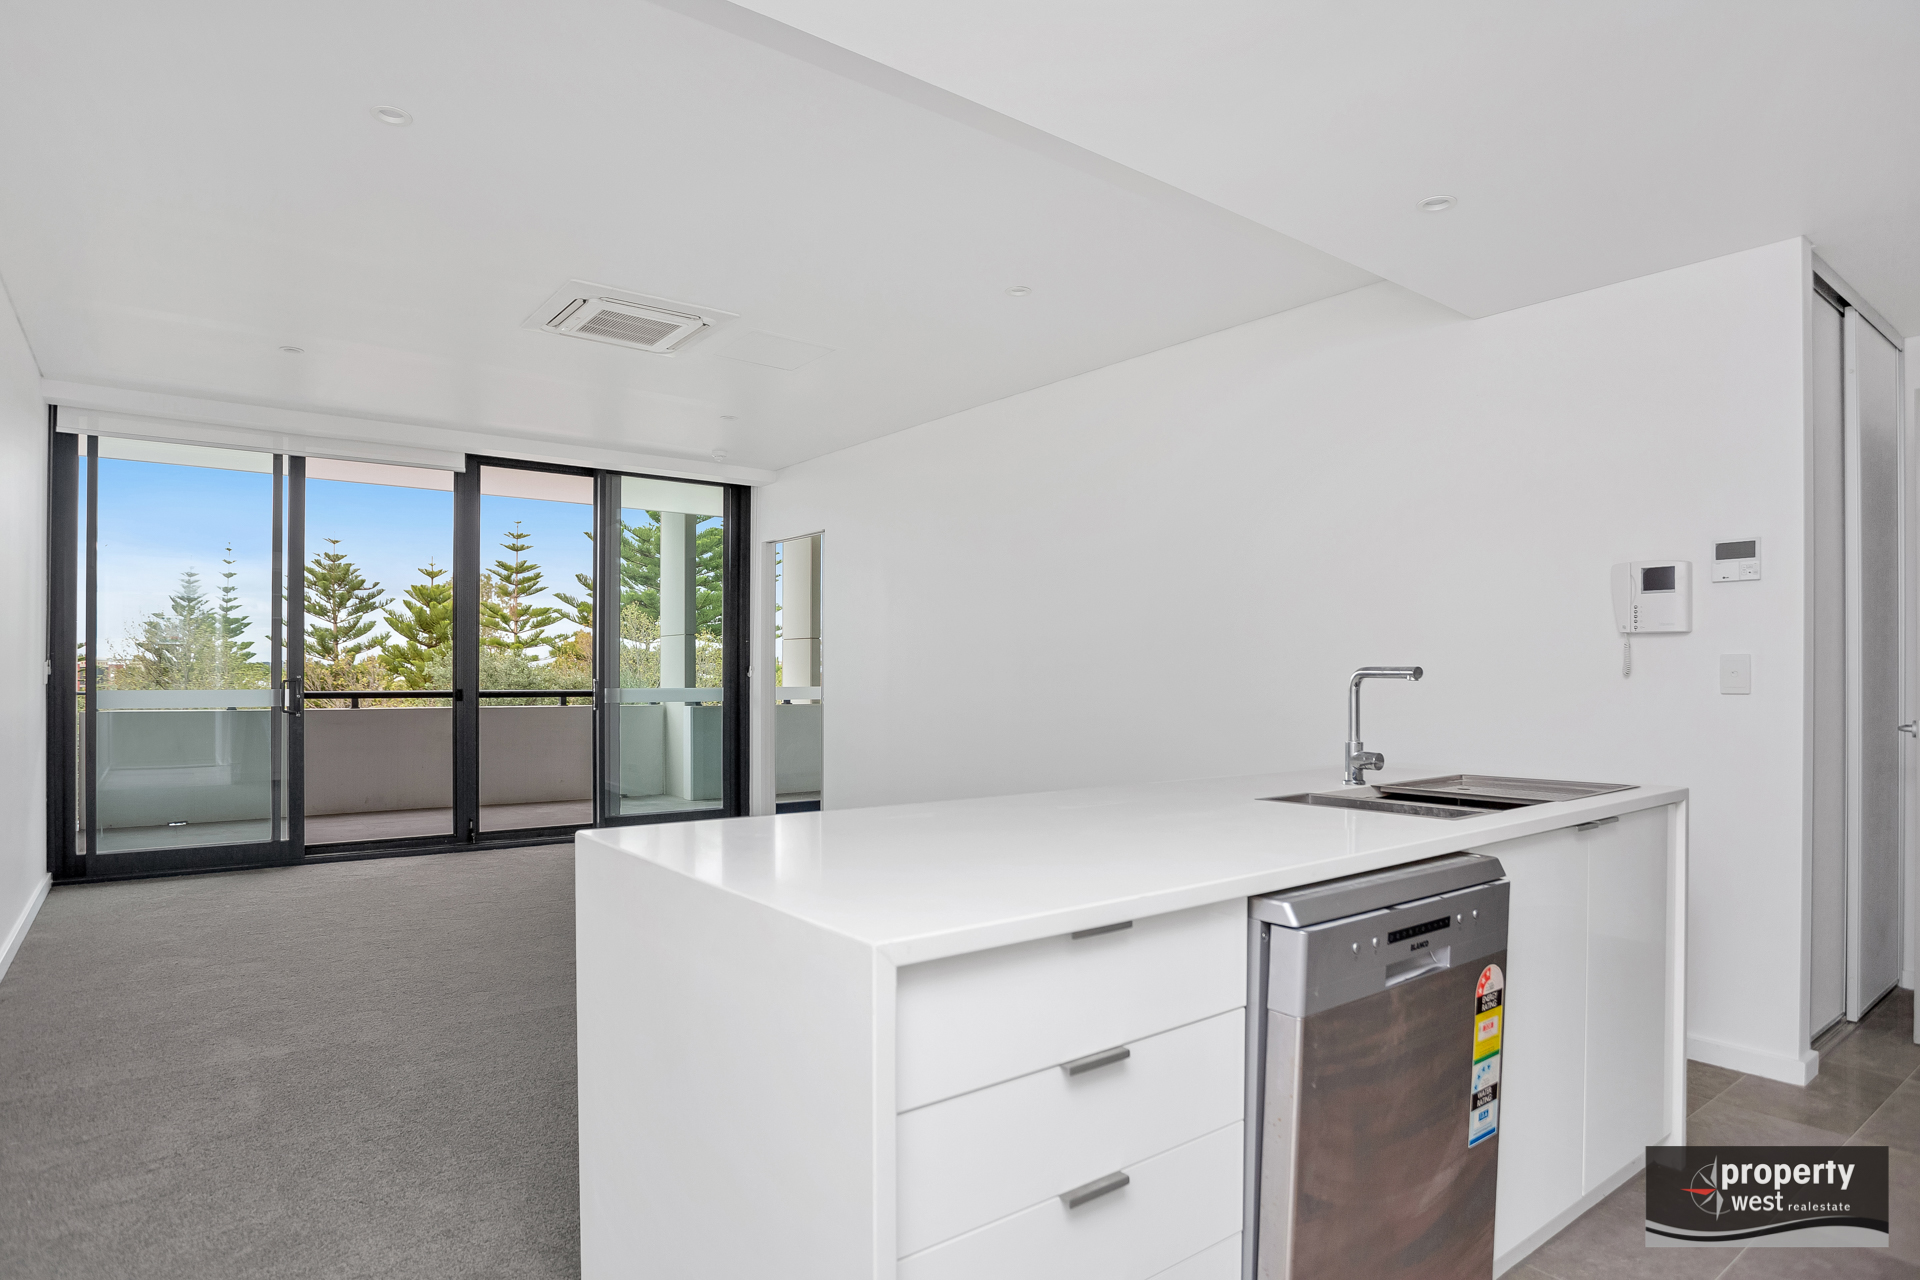 EXECUTIVE RENOVATED APARTMENT AVAILABLE NOW!